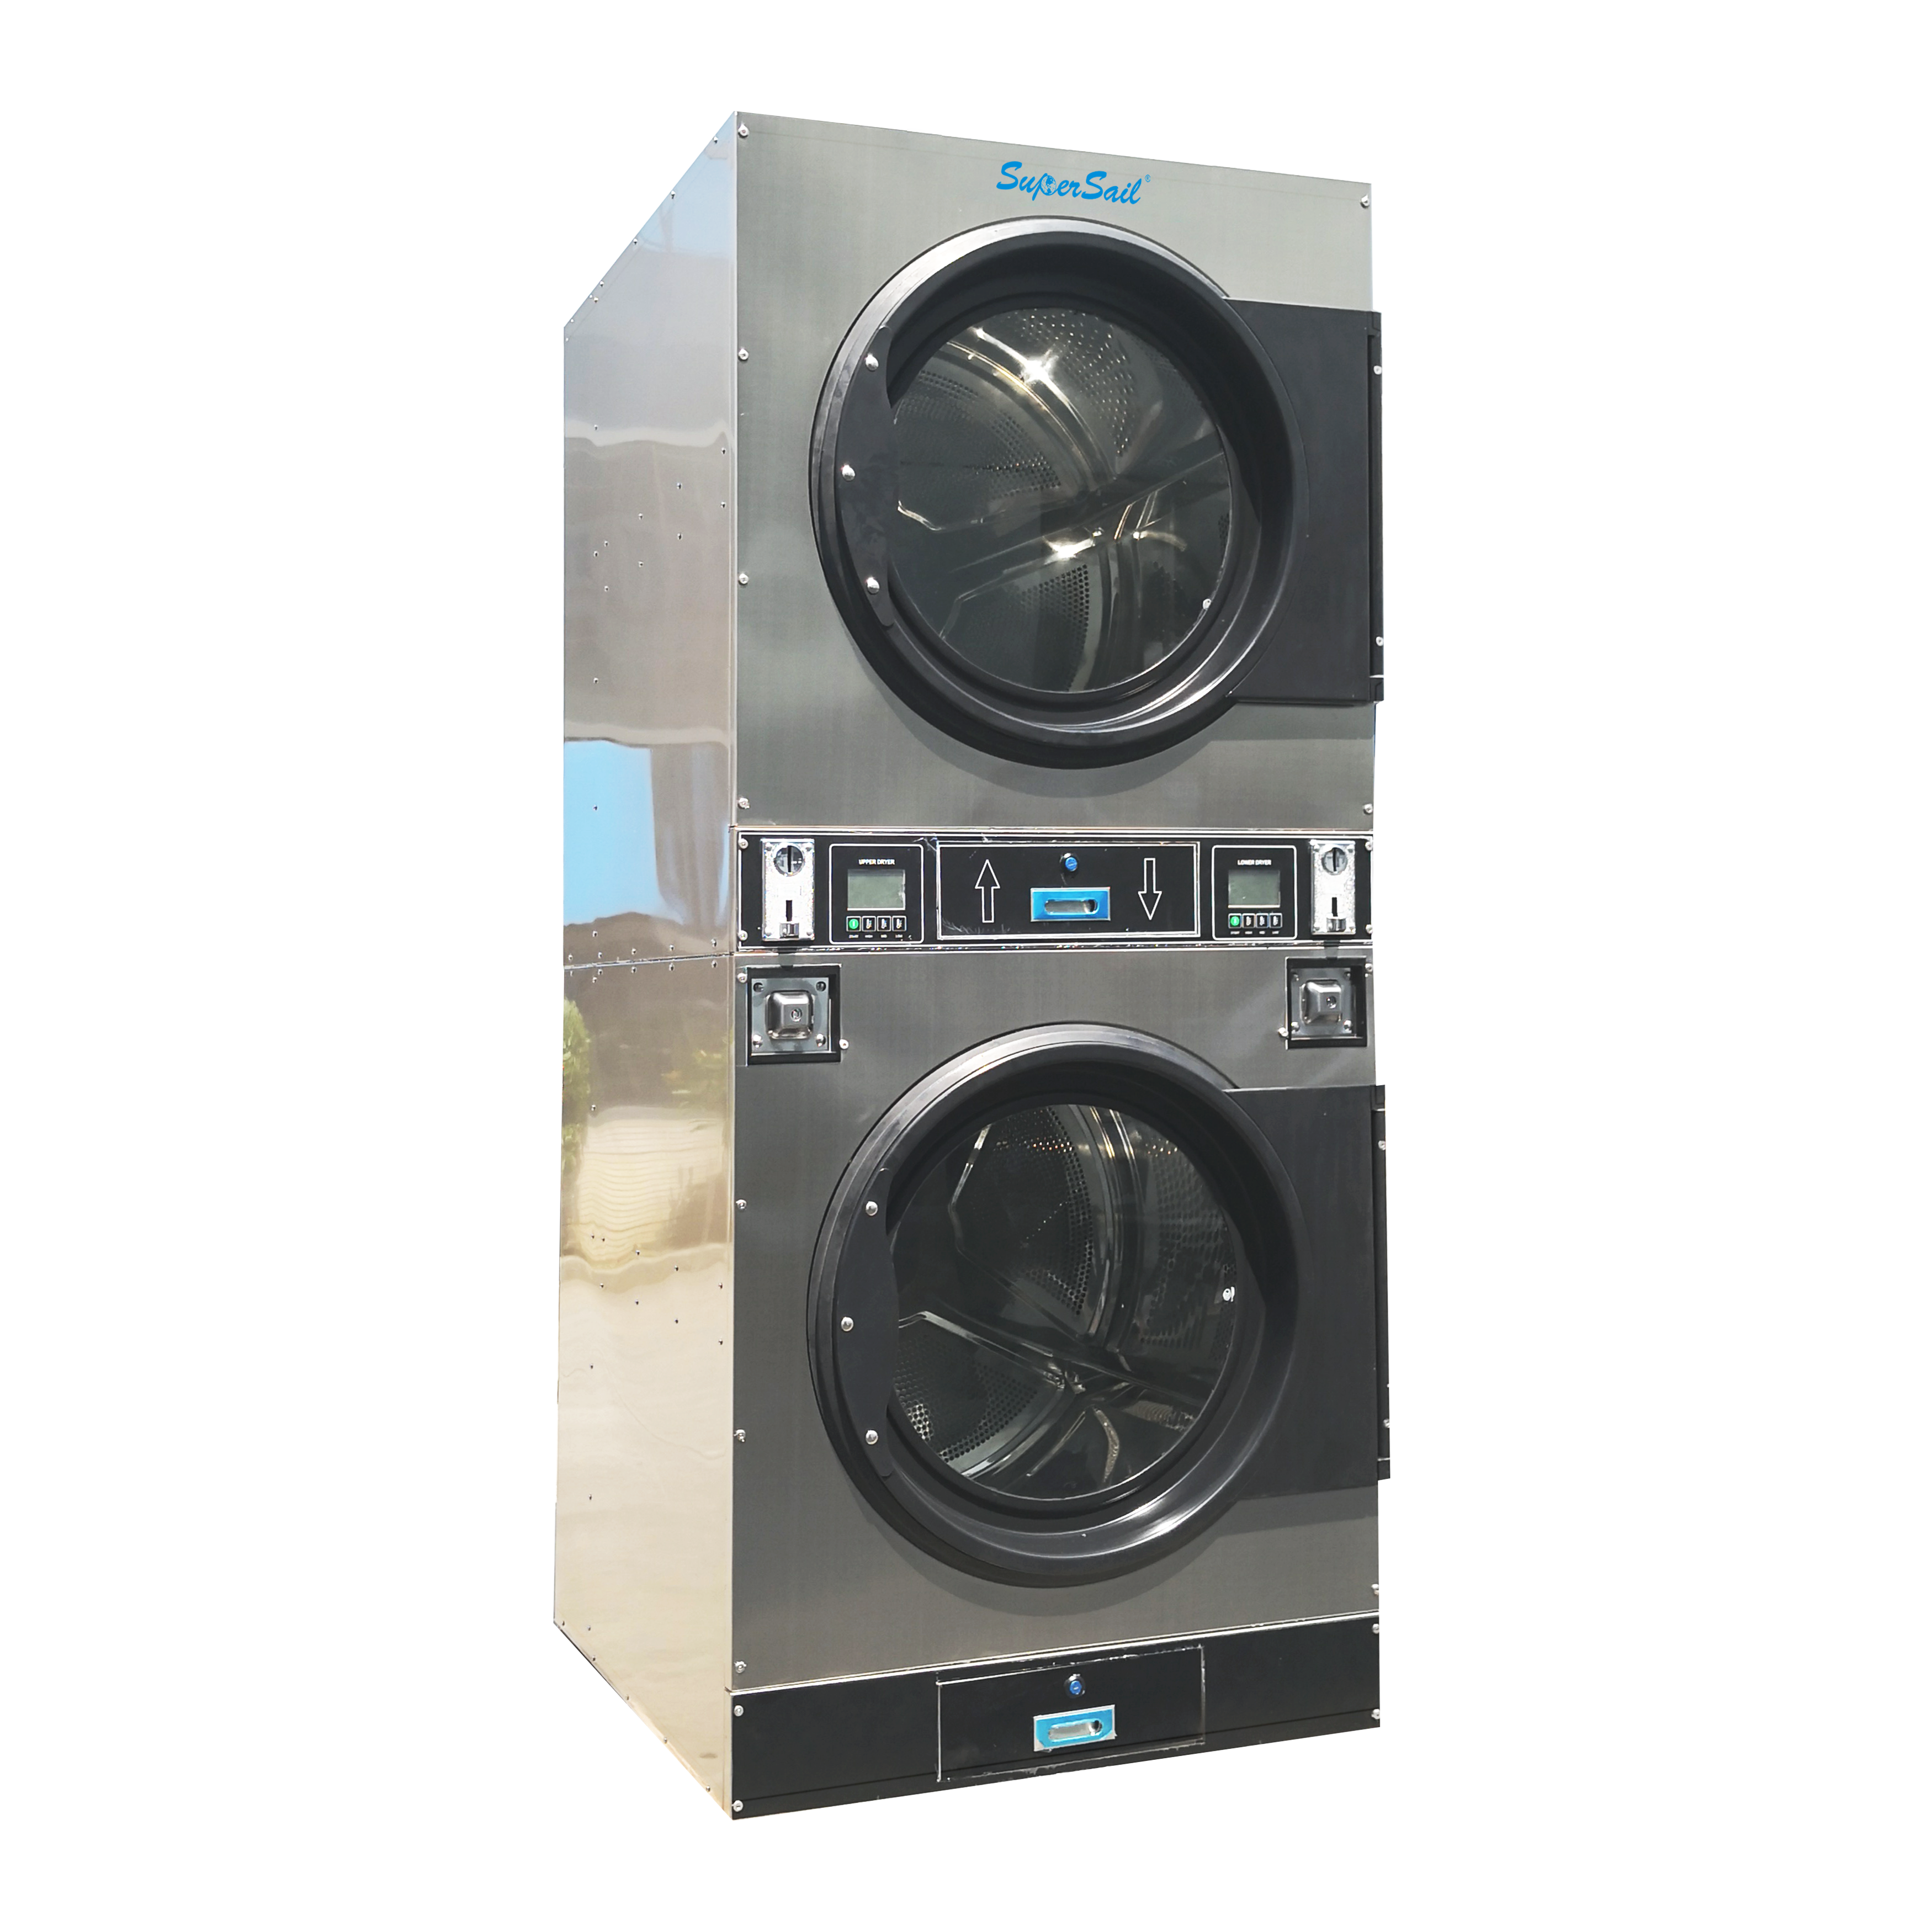 Best Washer And Dryer Commercial Washing And Drying Machine Prices All In One Washing Machine Coin Operated Coin Dryer Suppliers Buy Coin Dryer Suppliers High Quality Coin Operated Laundry Equipment Coin Operated Laundry